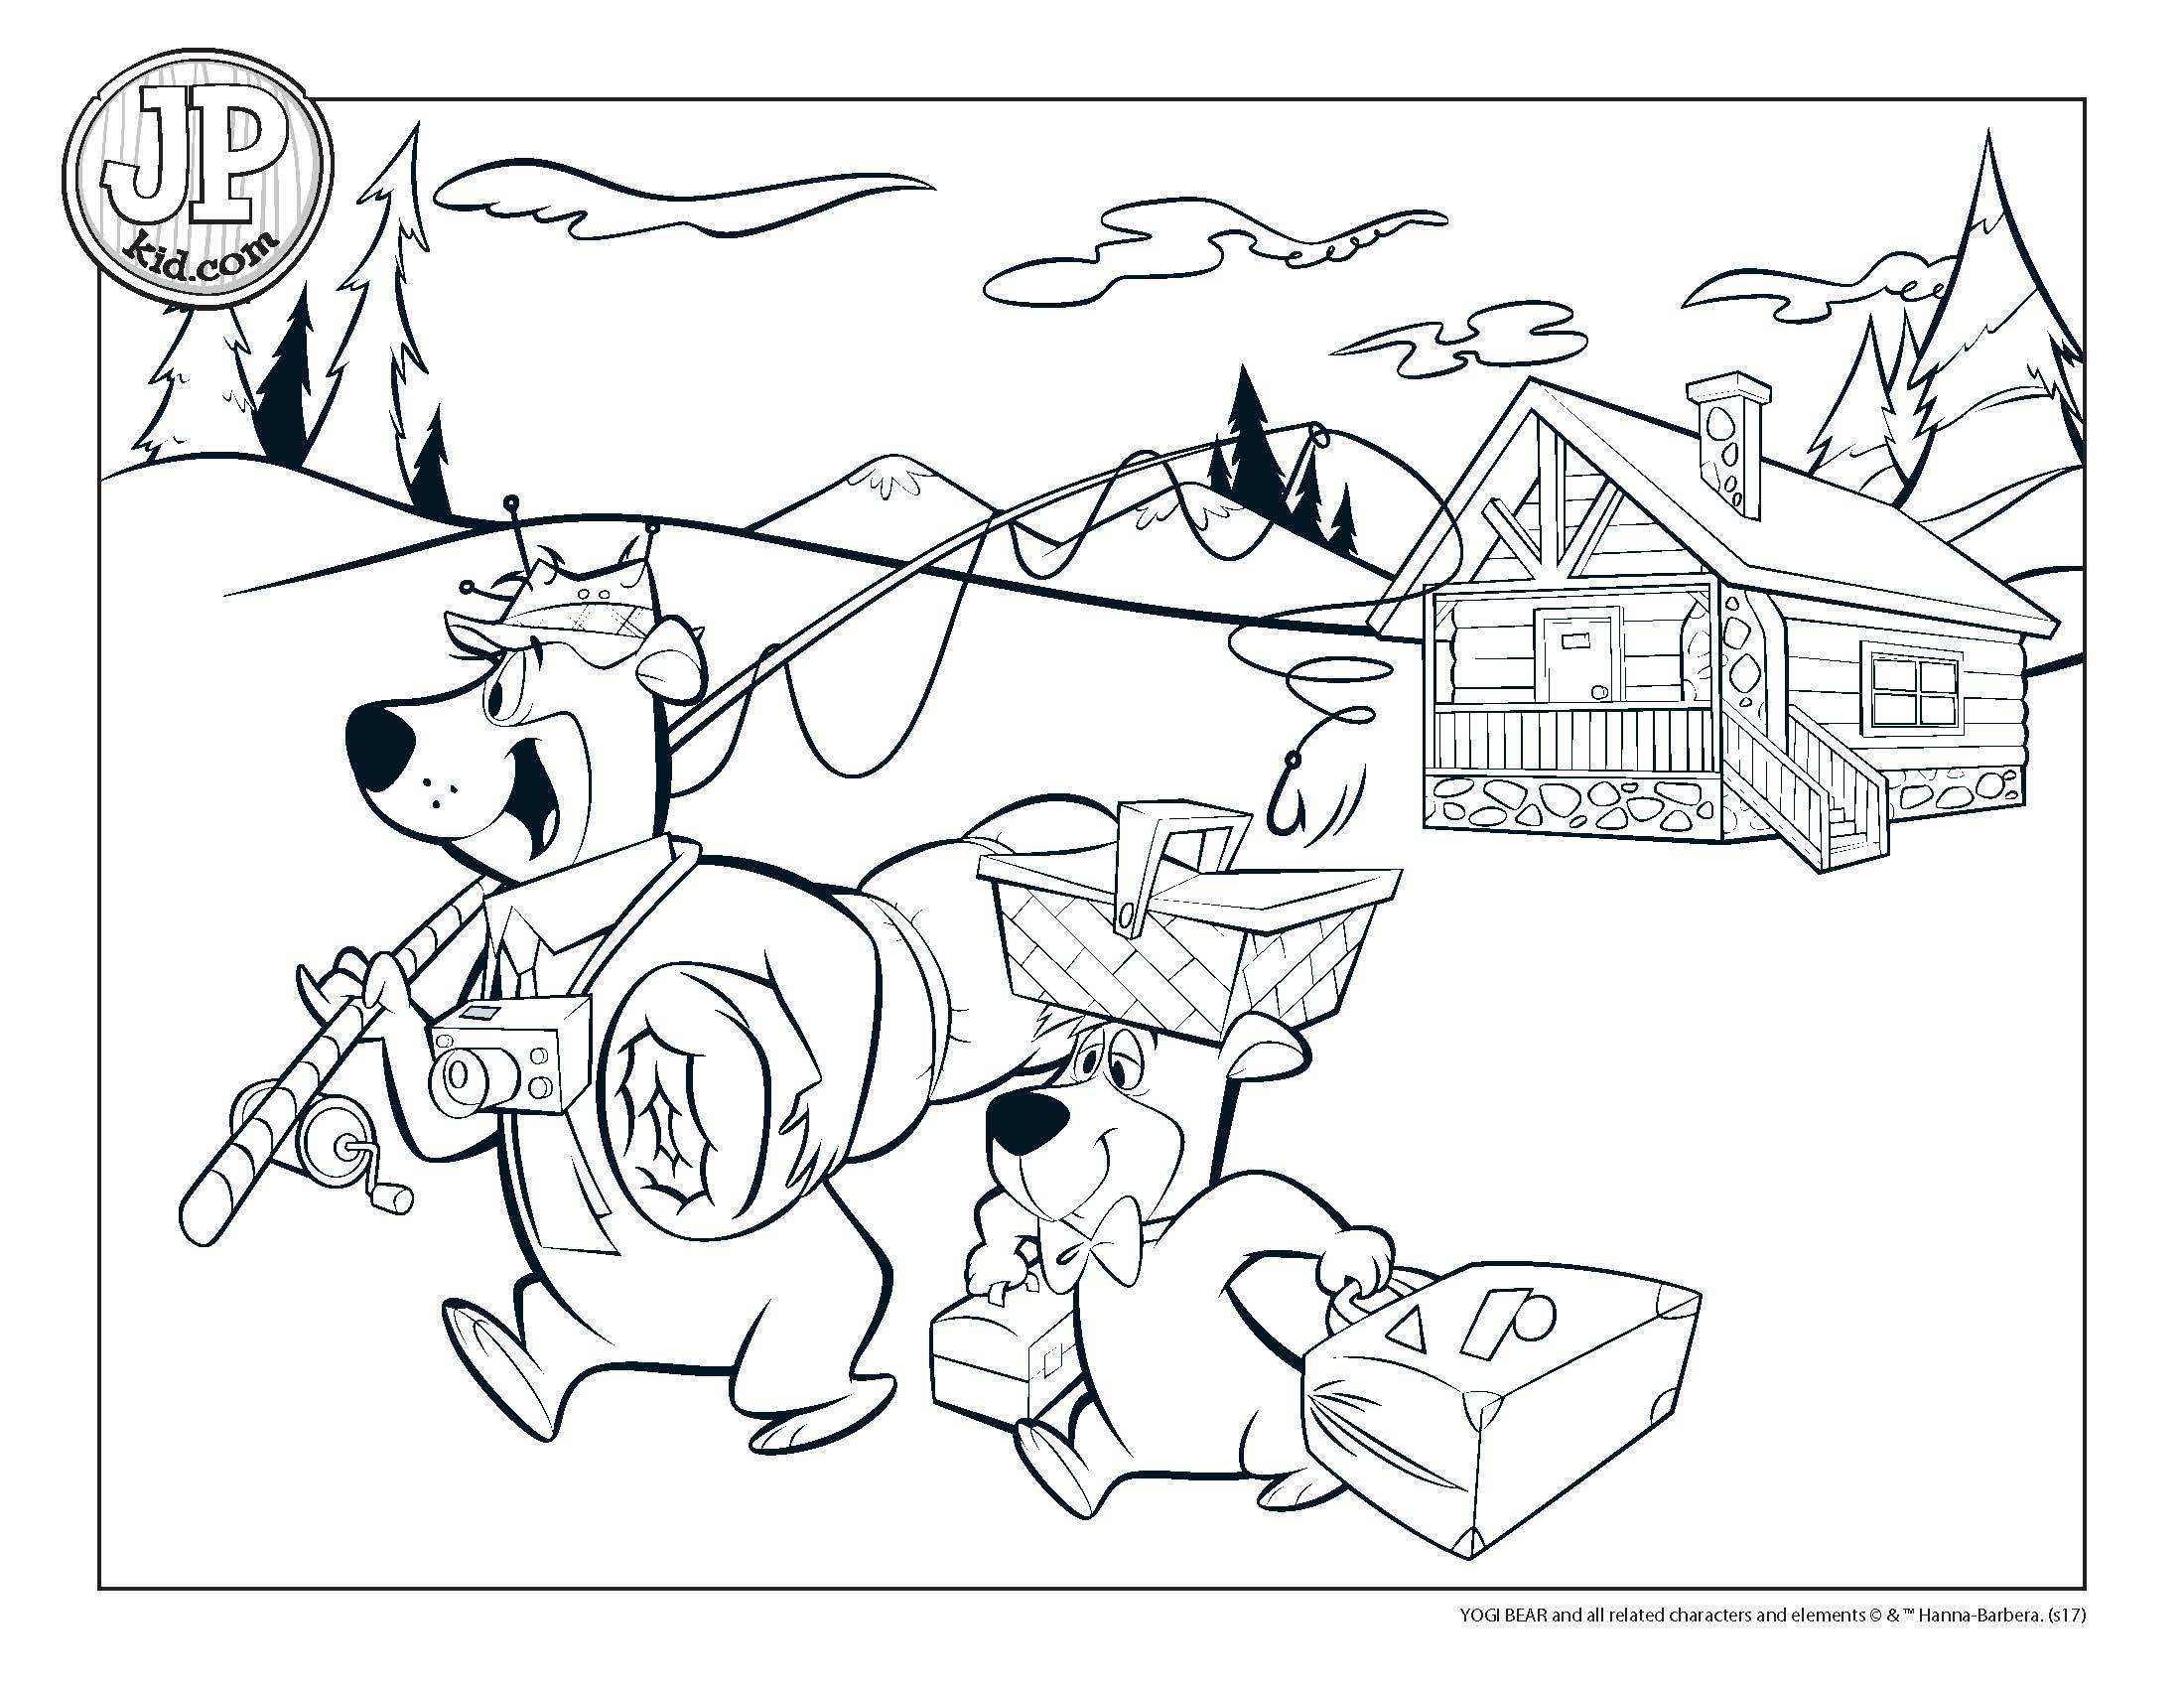 Yogi Bear Coloring Page Jpkid Coloring Page Campers Yogi Bears Jellystone Park Hill Country